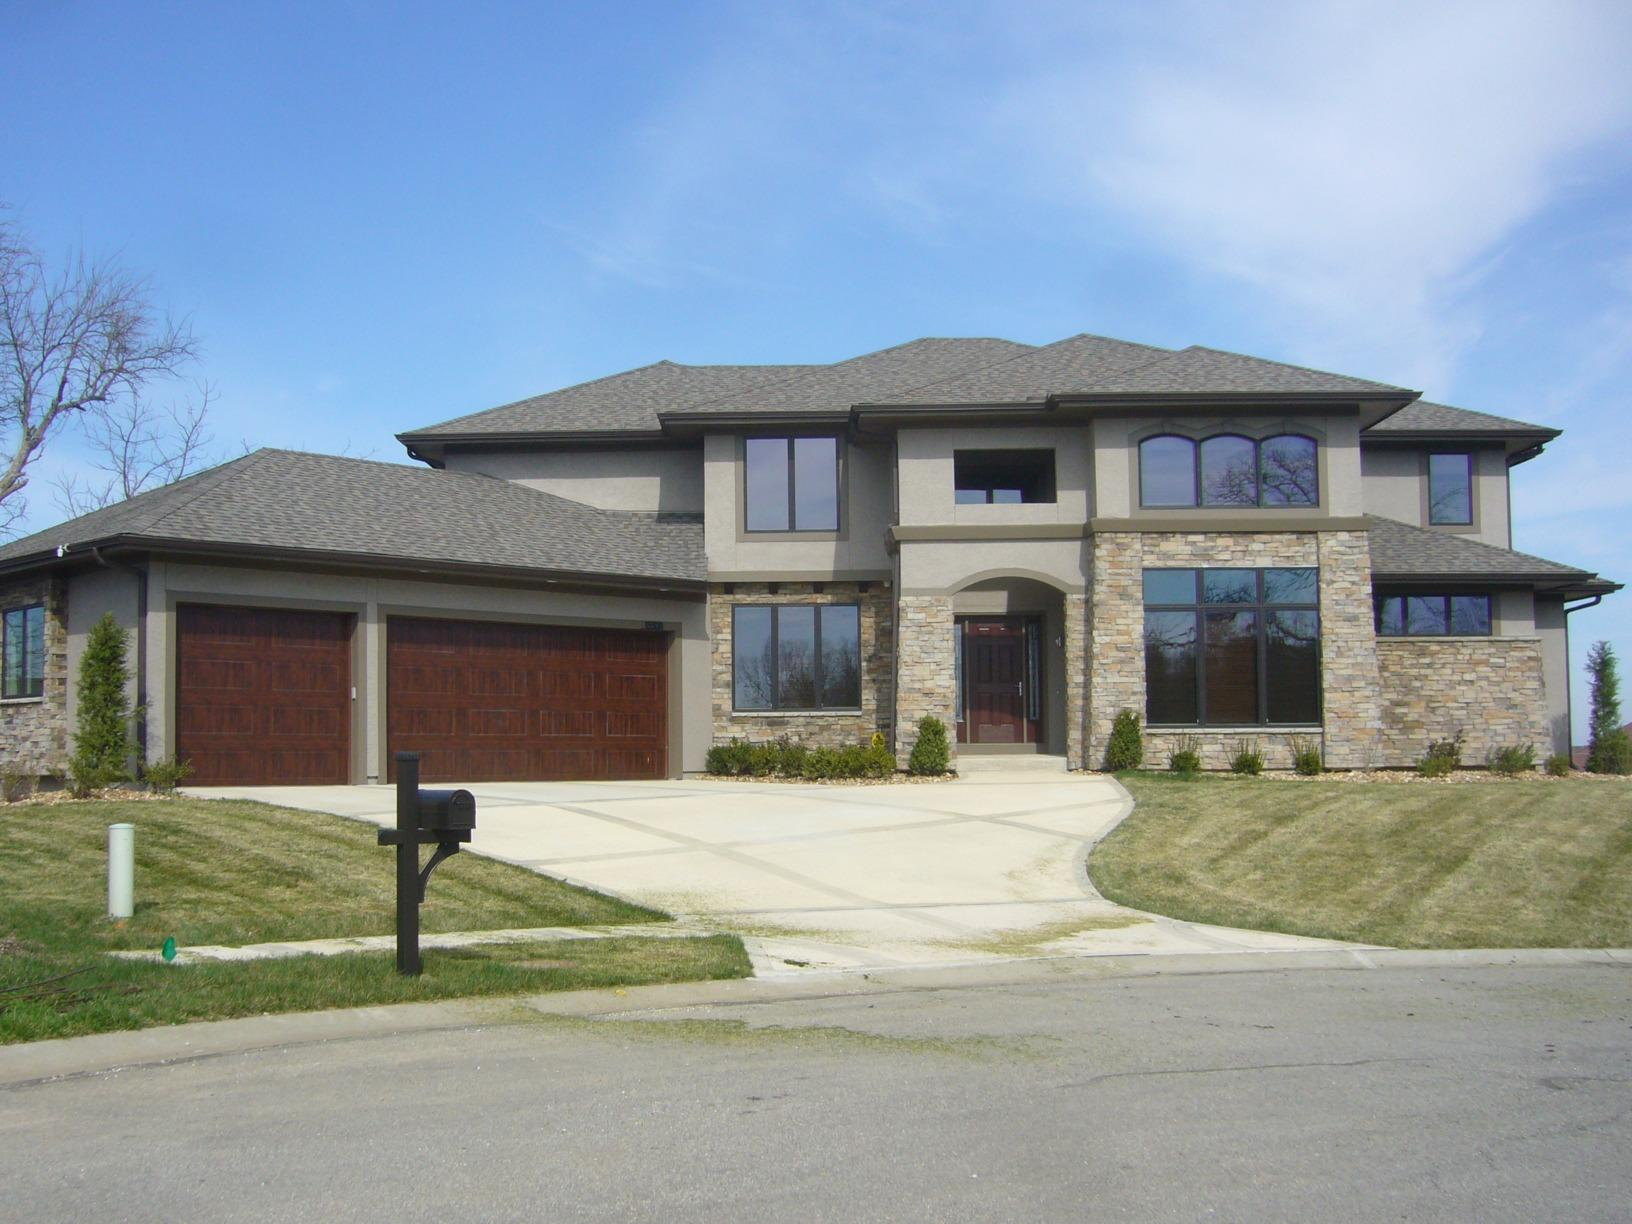 New Construction in Overland Park, KS - After Photo